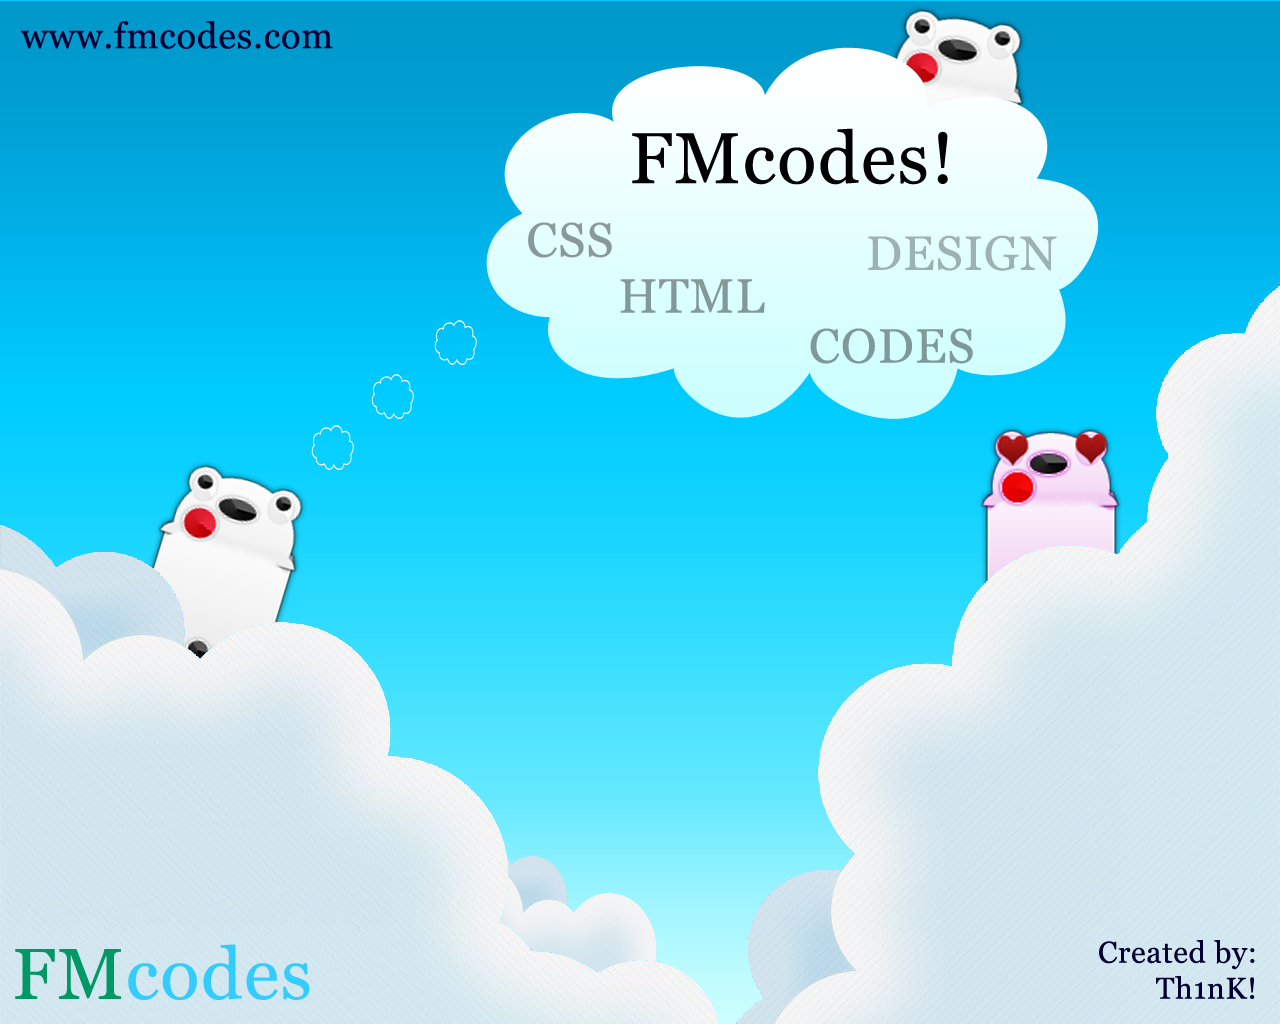 [CONTEST]: Create FMcodes Wallpapers! 8f3da4dcaf3f43b6